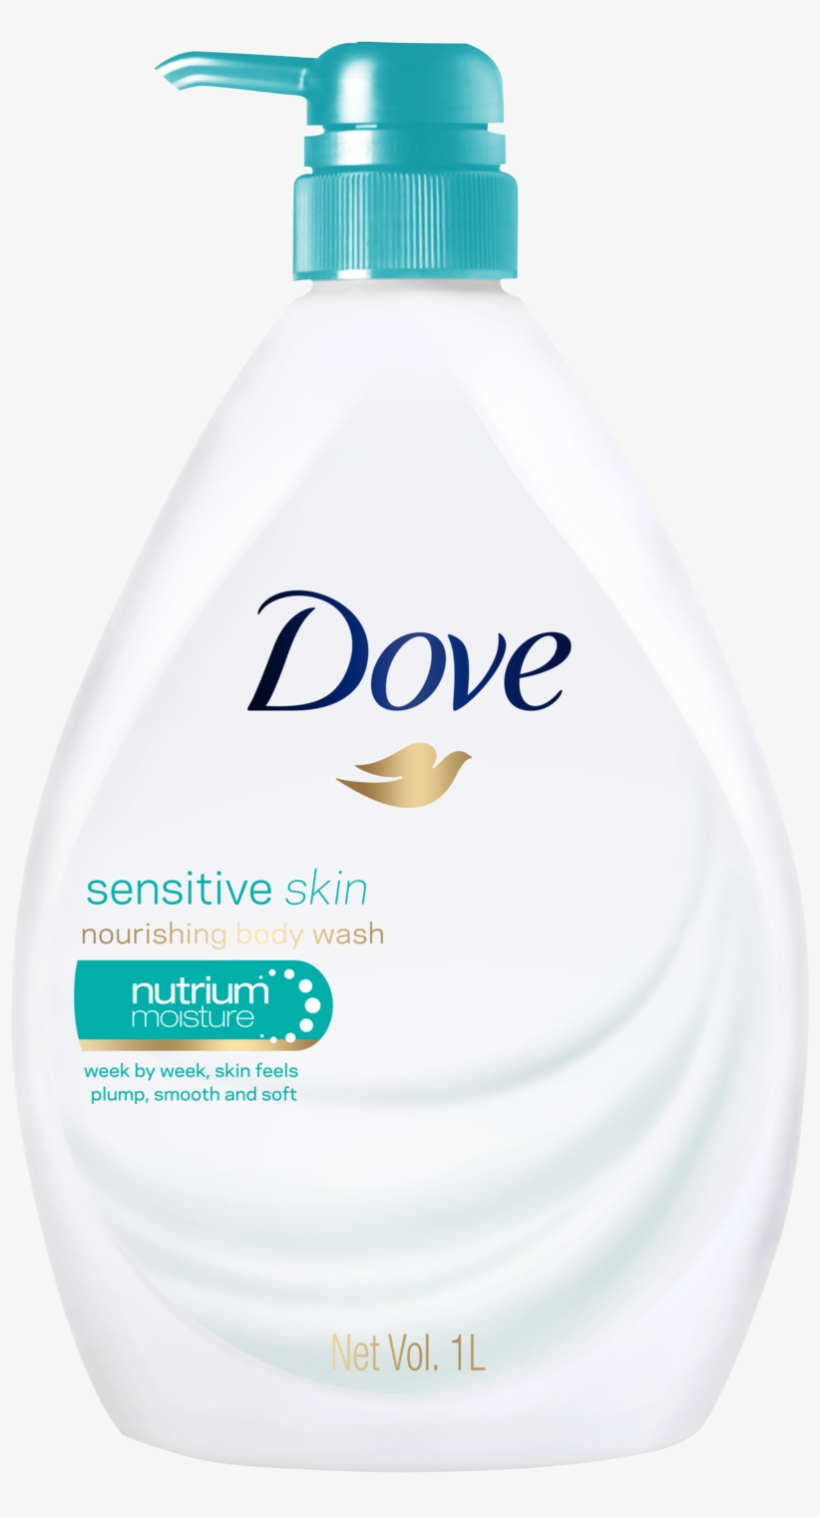 Dove Baby Shampoo Free Transparent Png Download Pngkey